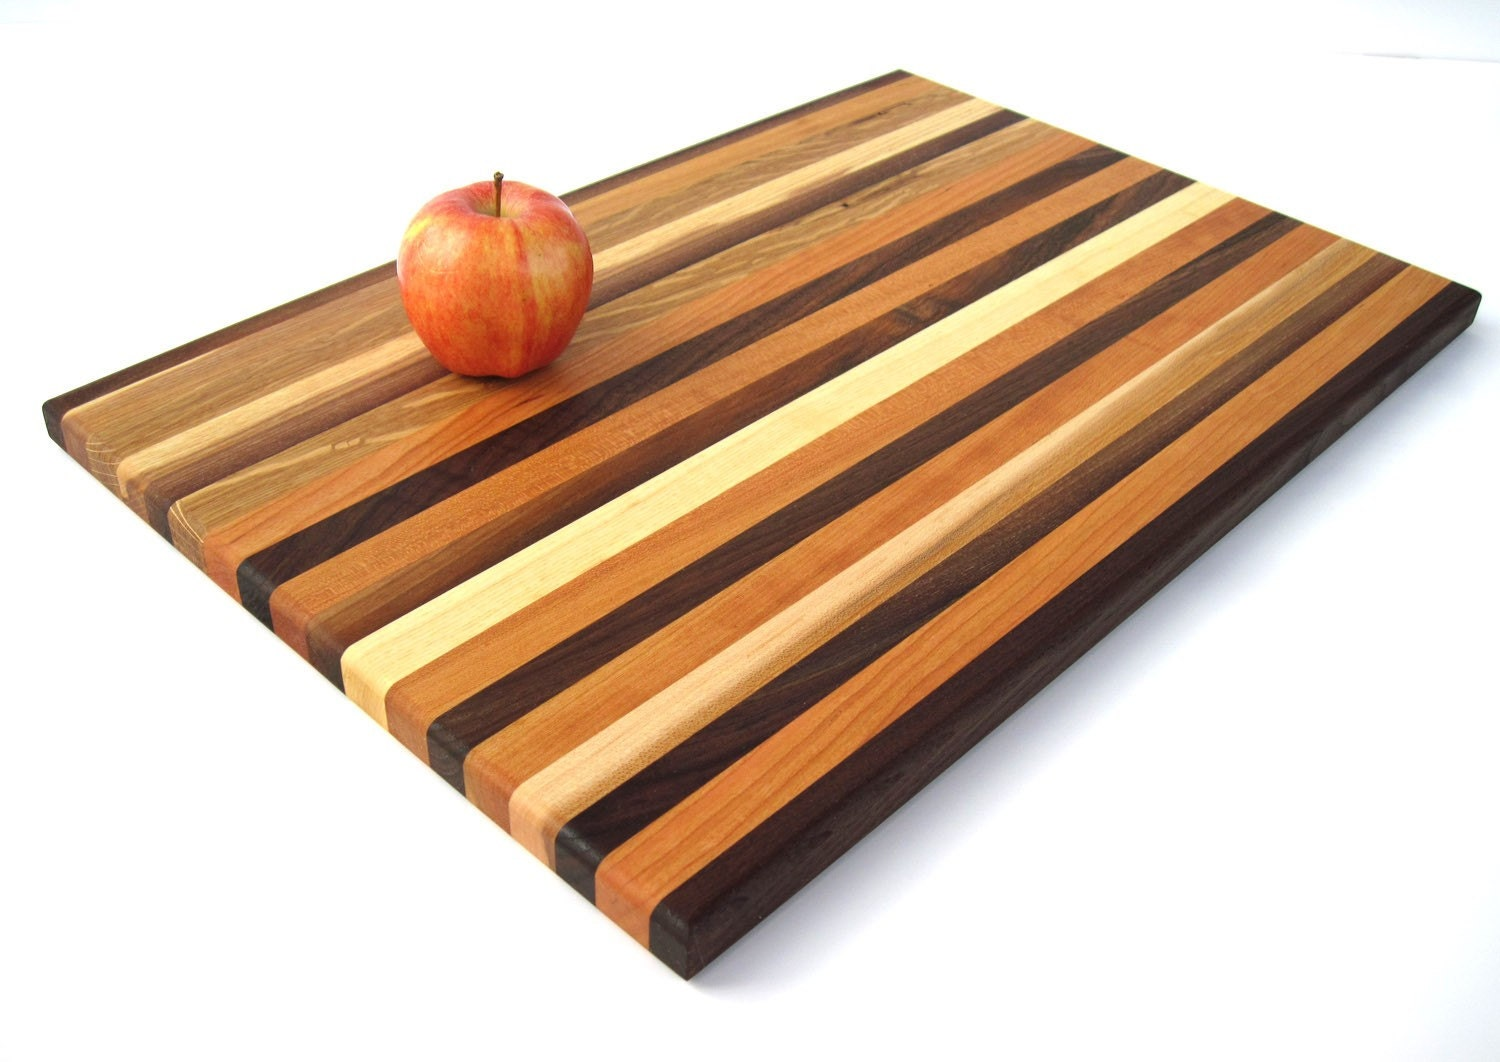 Wood cutting boards are the choice of professionals. Shop for paddle boards, carving boards and chopping boards at tennesseemyblogw0.cf - the selection is excellent. Cook like a pro - buy now.